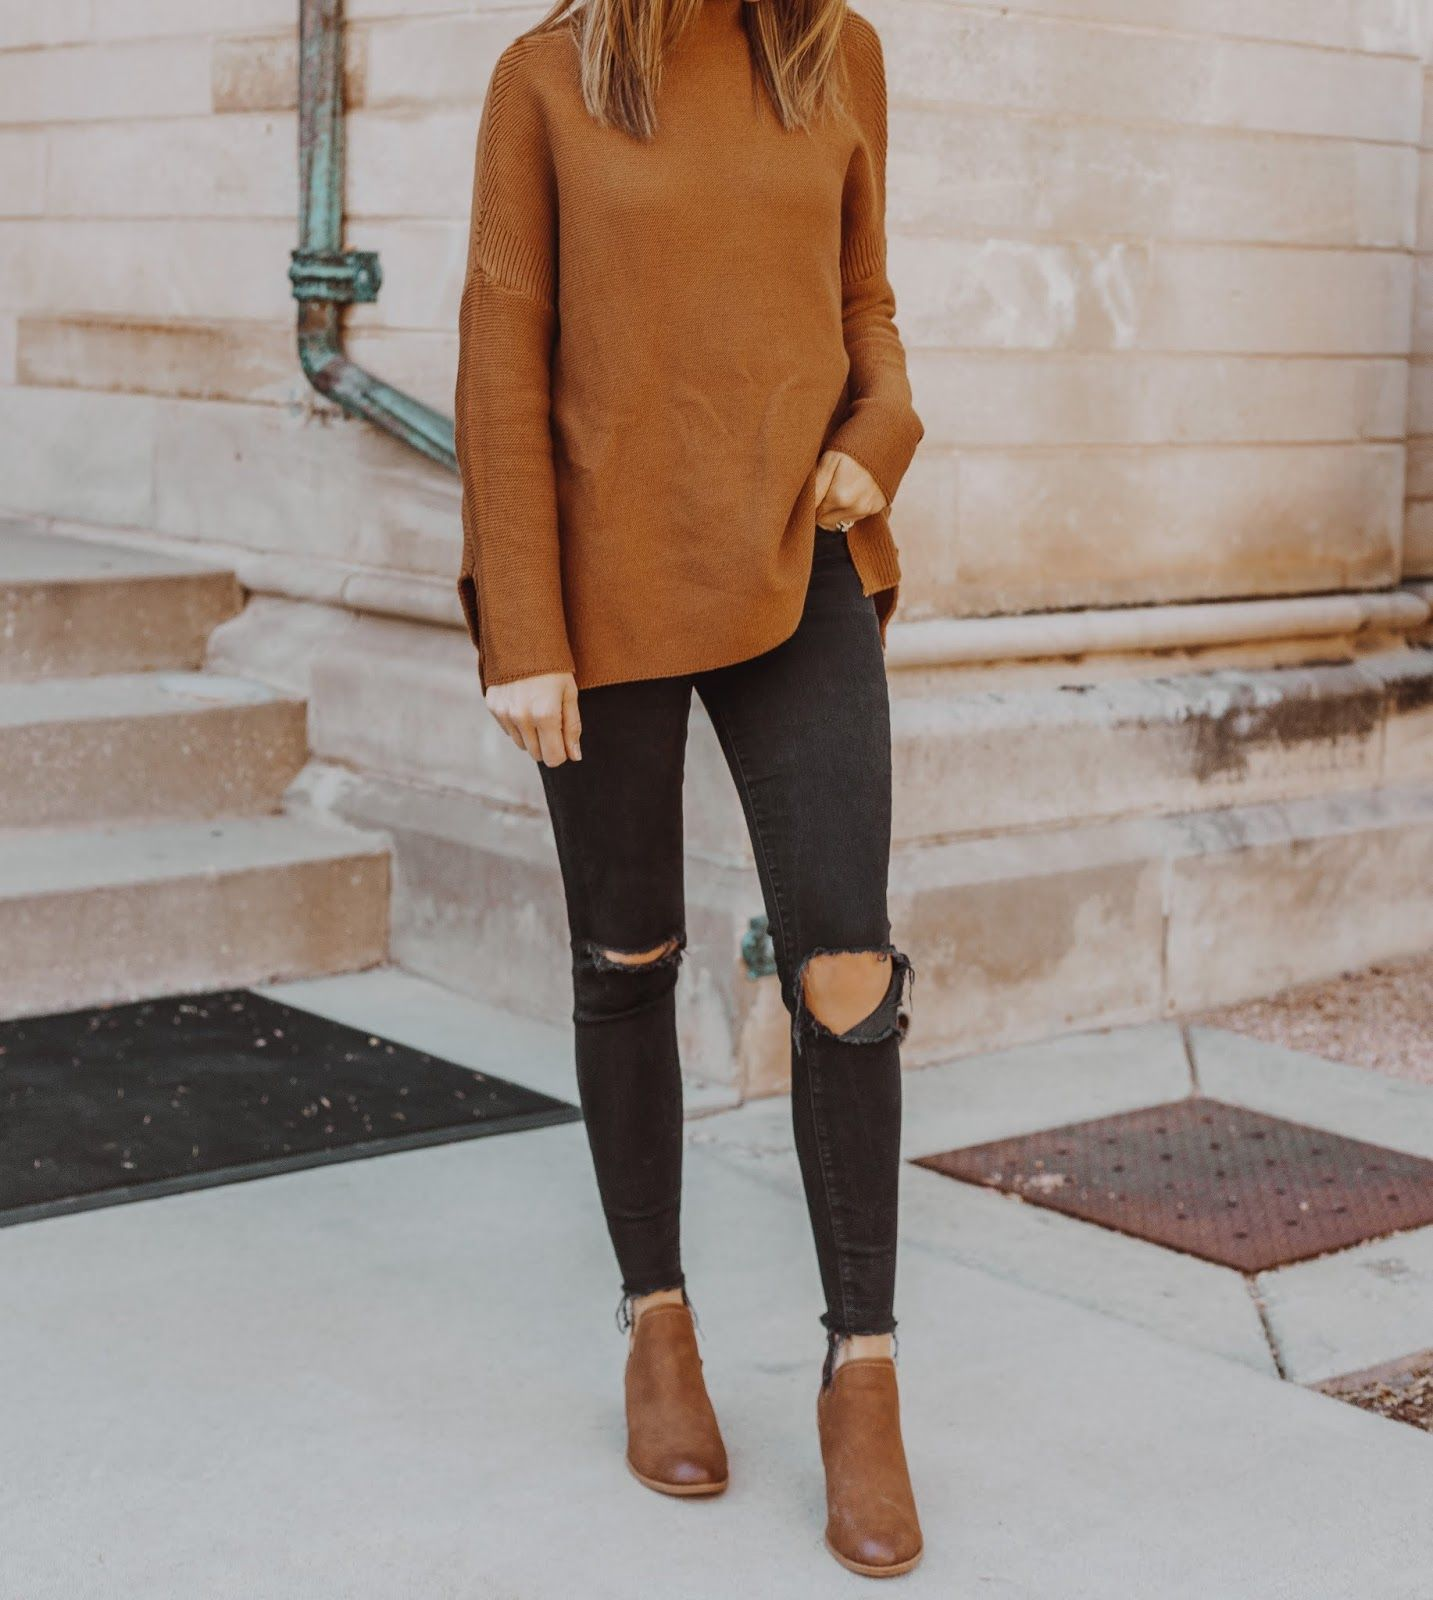 Easy Thanksgiving Outfit: Brown Sweater + Black Jeans - Leah Behr